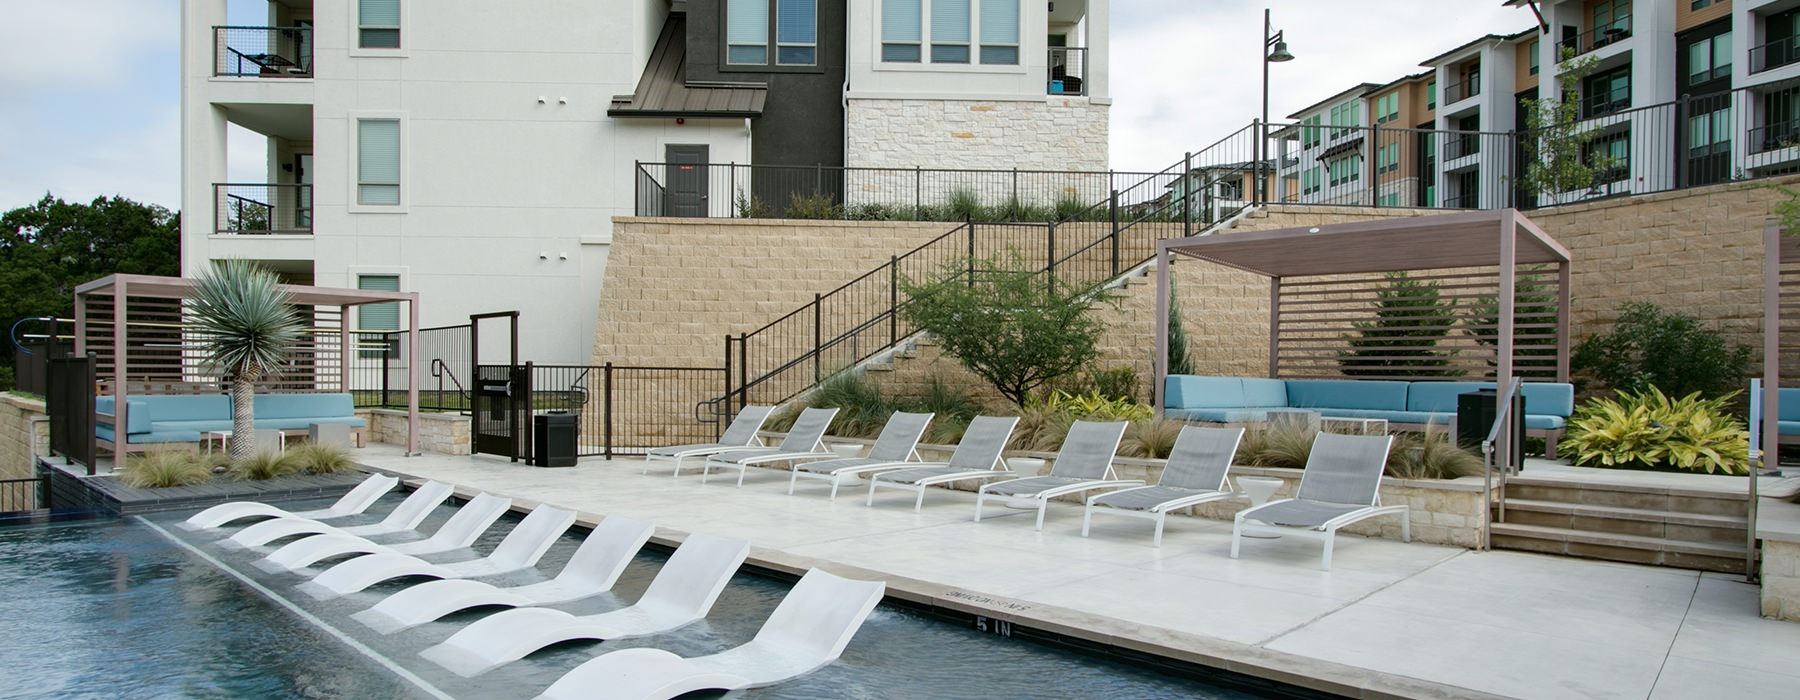 sun deck with ample chairs